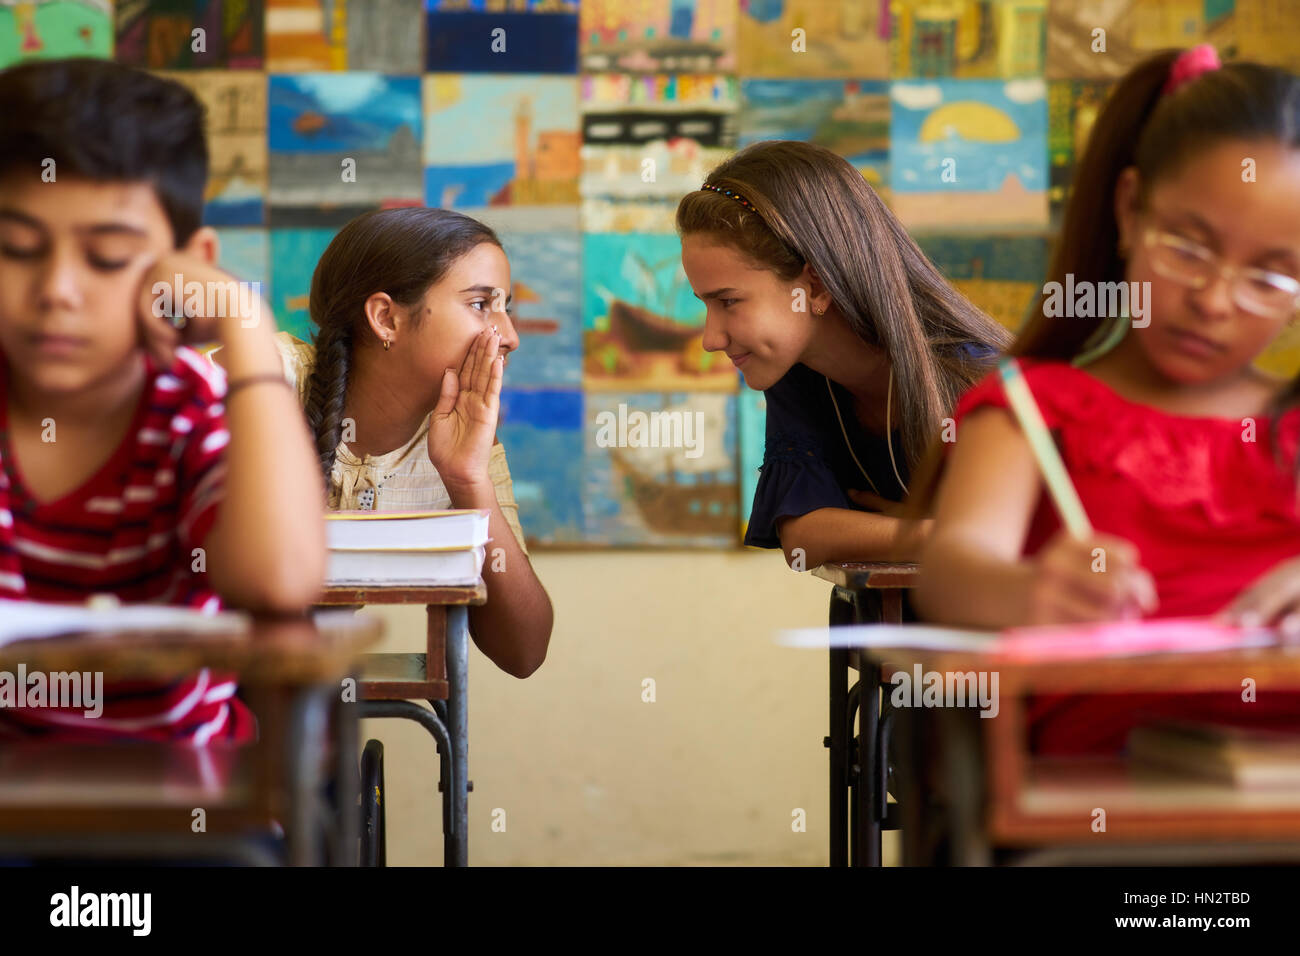 Young people and education. Group of hispanic students in class at school during lesson. Girls cheating during admission - Stock Image